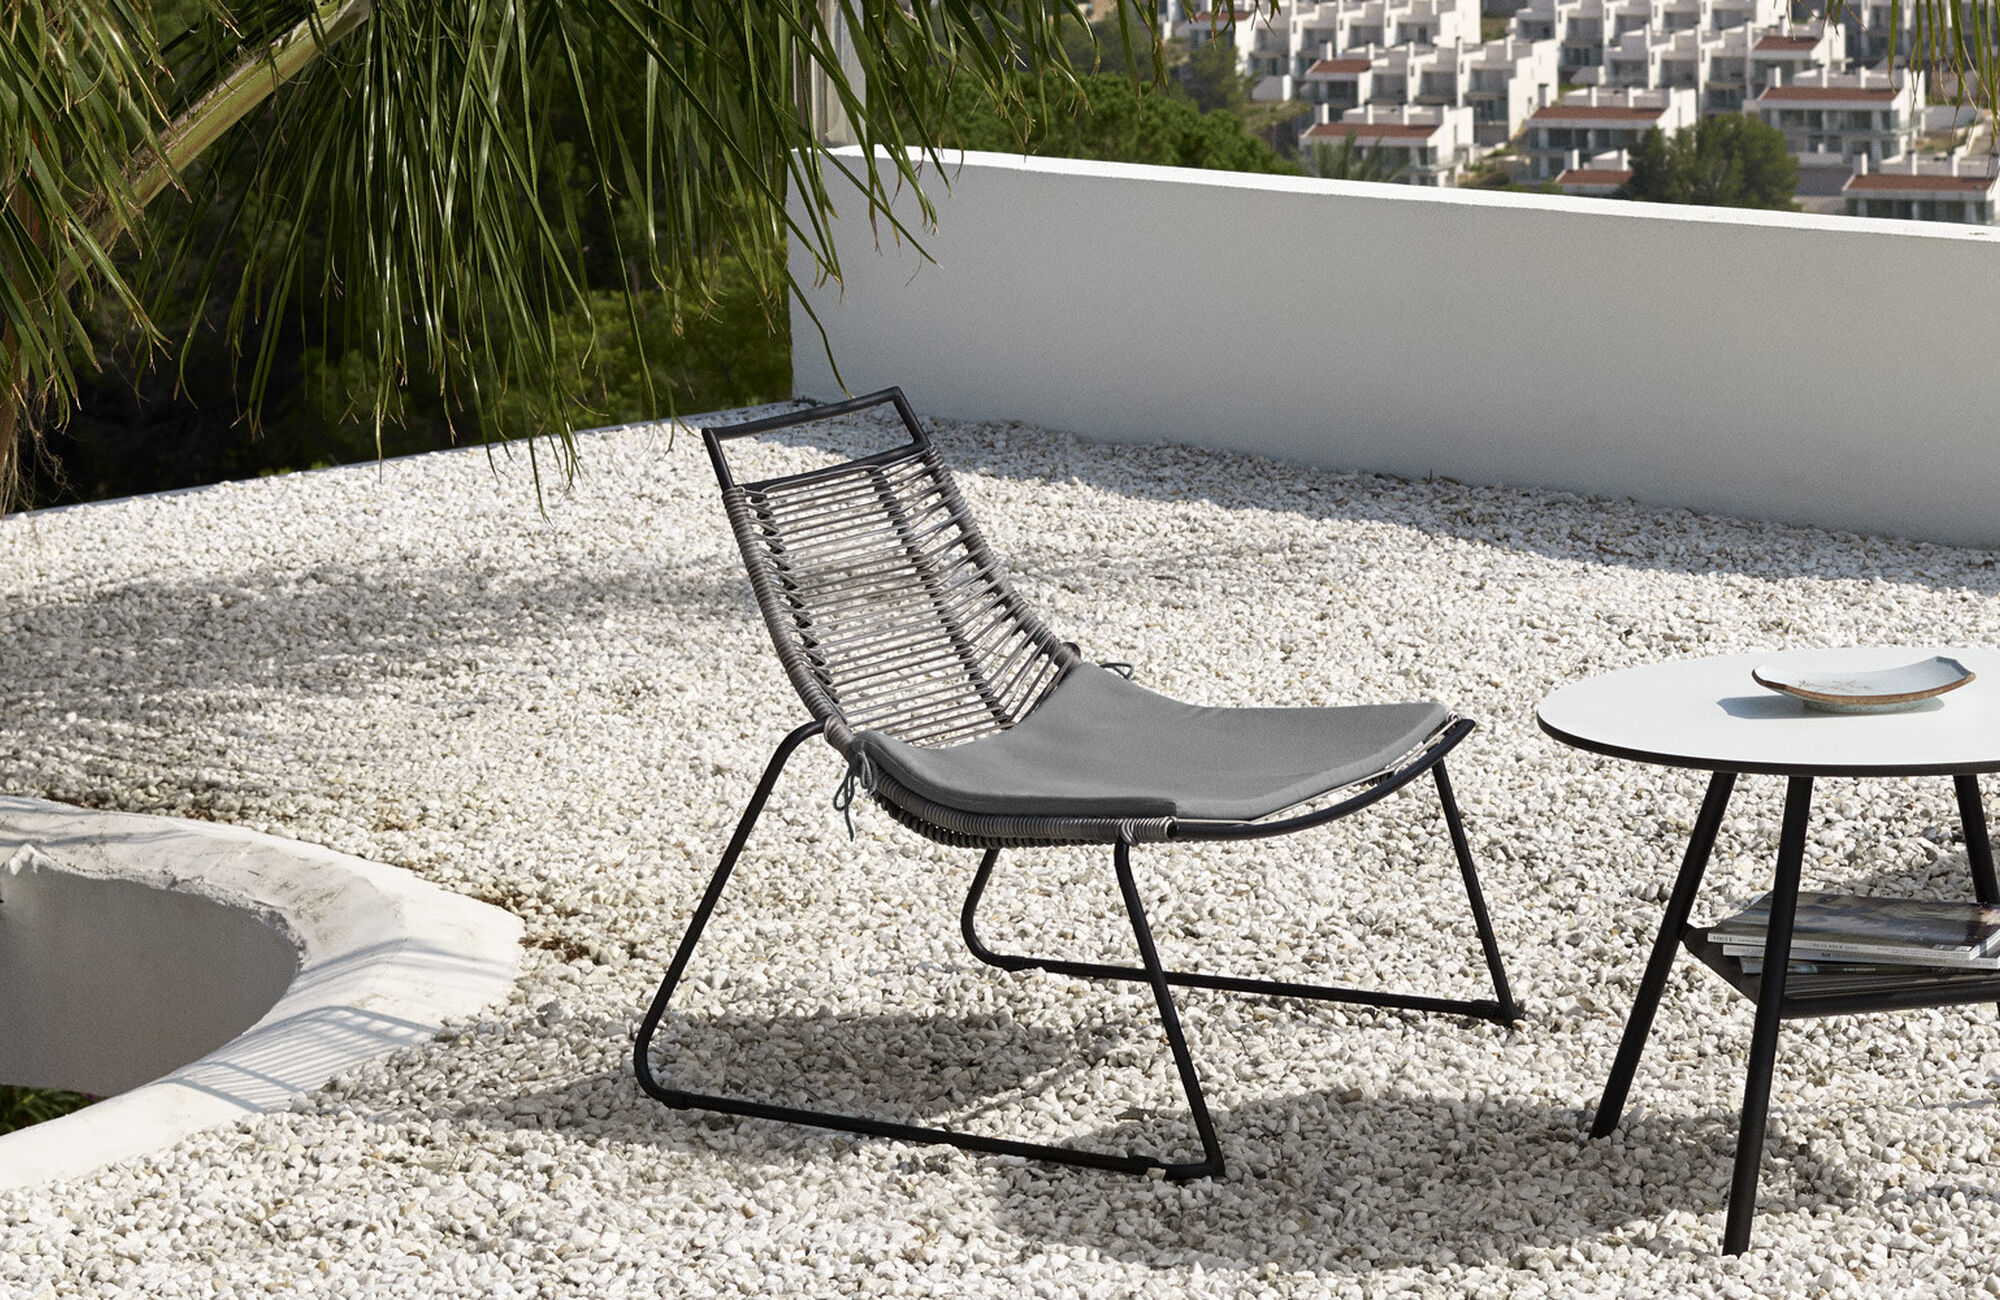 Outdoor dining furniture - Elba chair (for in and outdoor use)